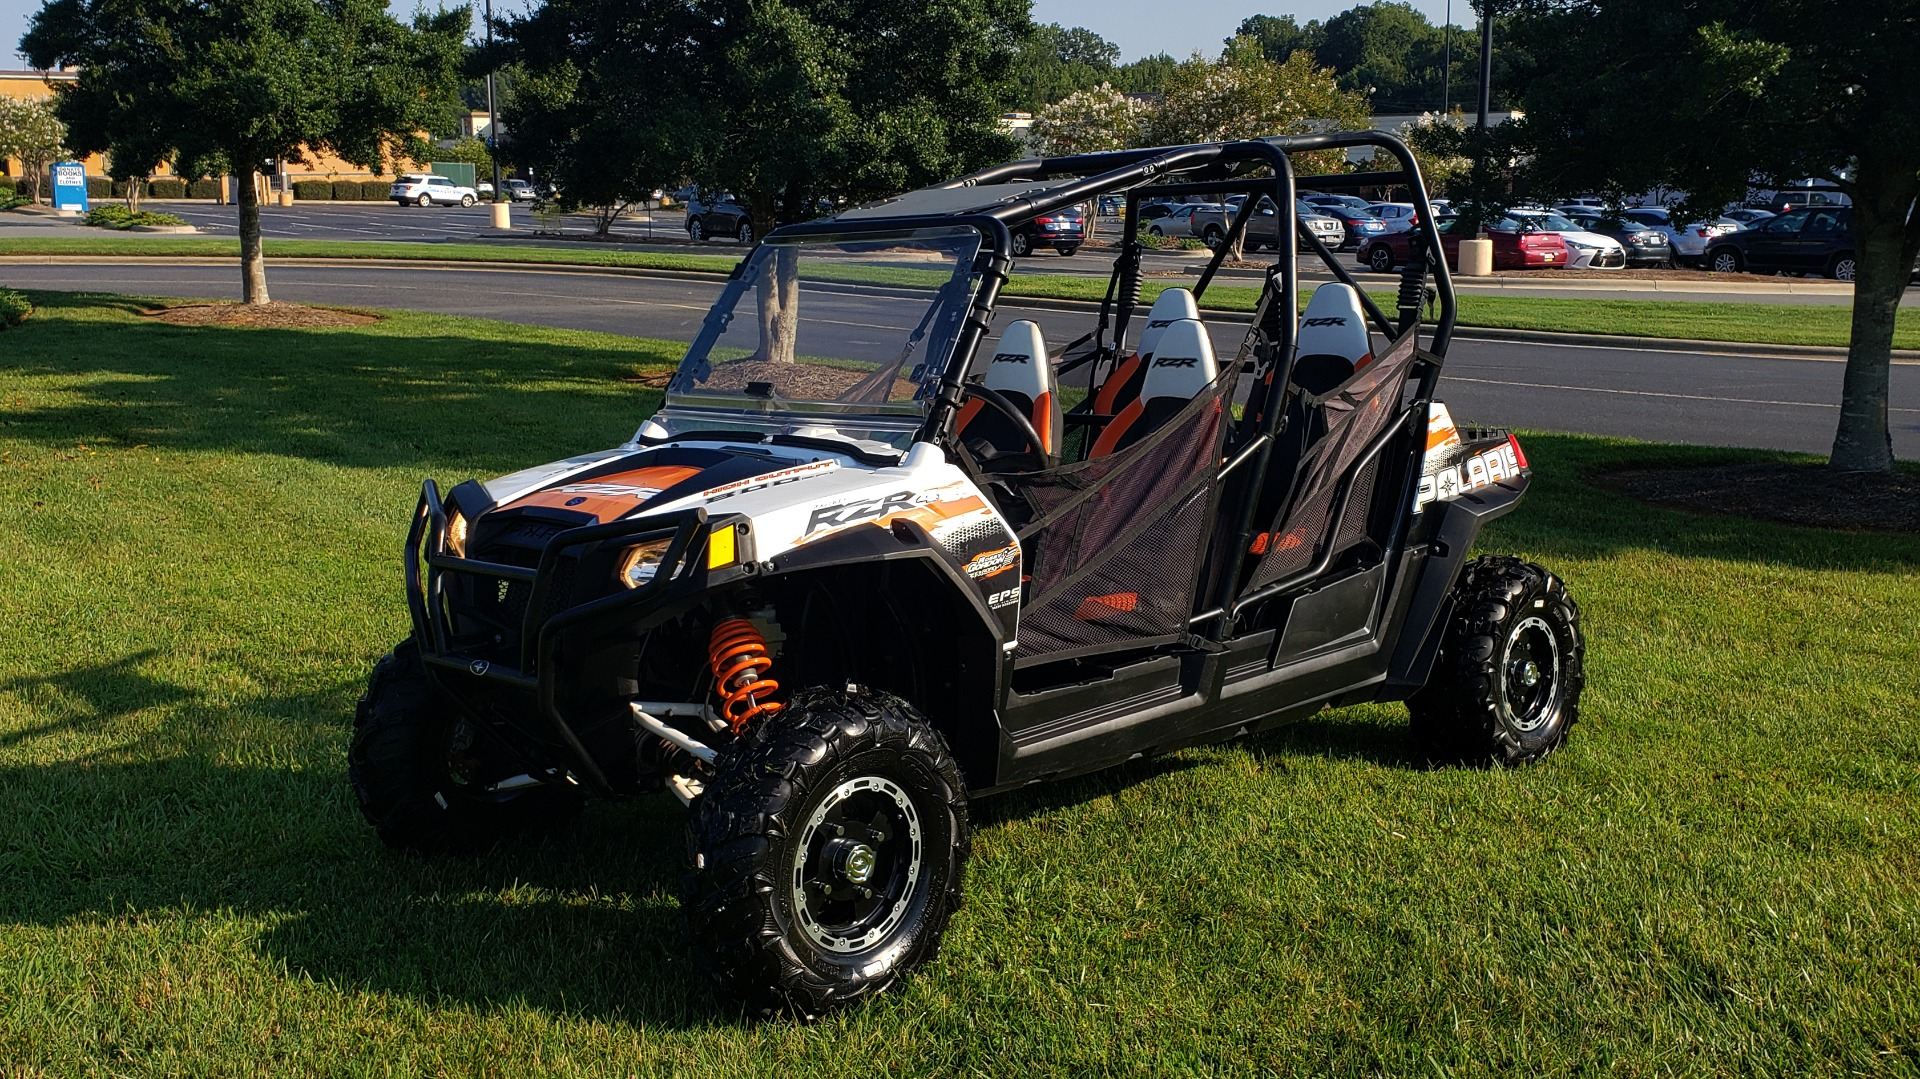 Used 2012 POLARIS RANGER RZR4 / HO 800 EFI / IPHONE CONNECT / SPEAKERS / NEW TIRES for sale Sold at Formula Imports in Charlotte NC 28227 4